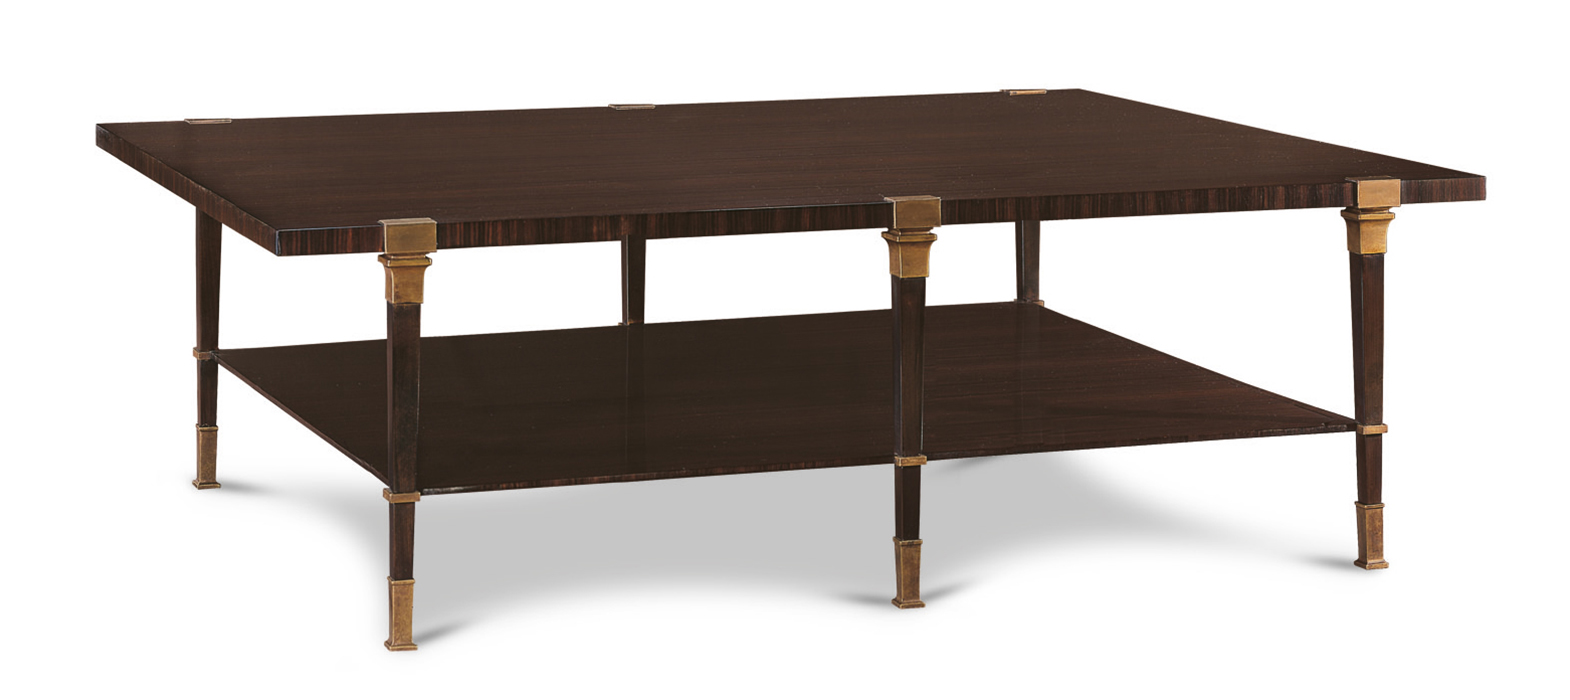 LOUVIERS COCKTAIL TABLE 150 X 100